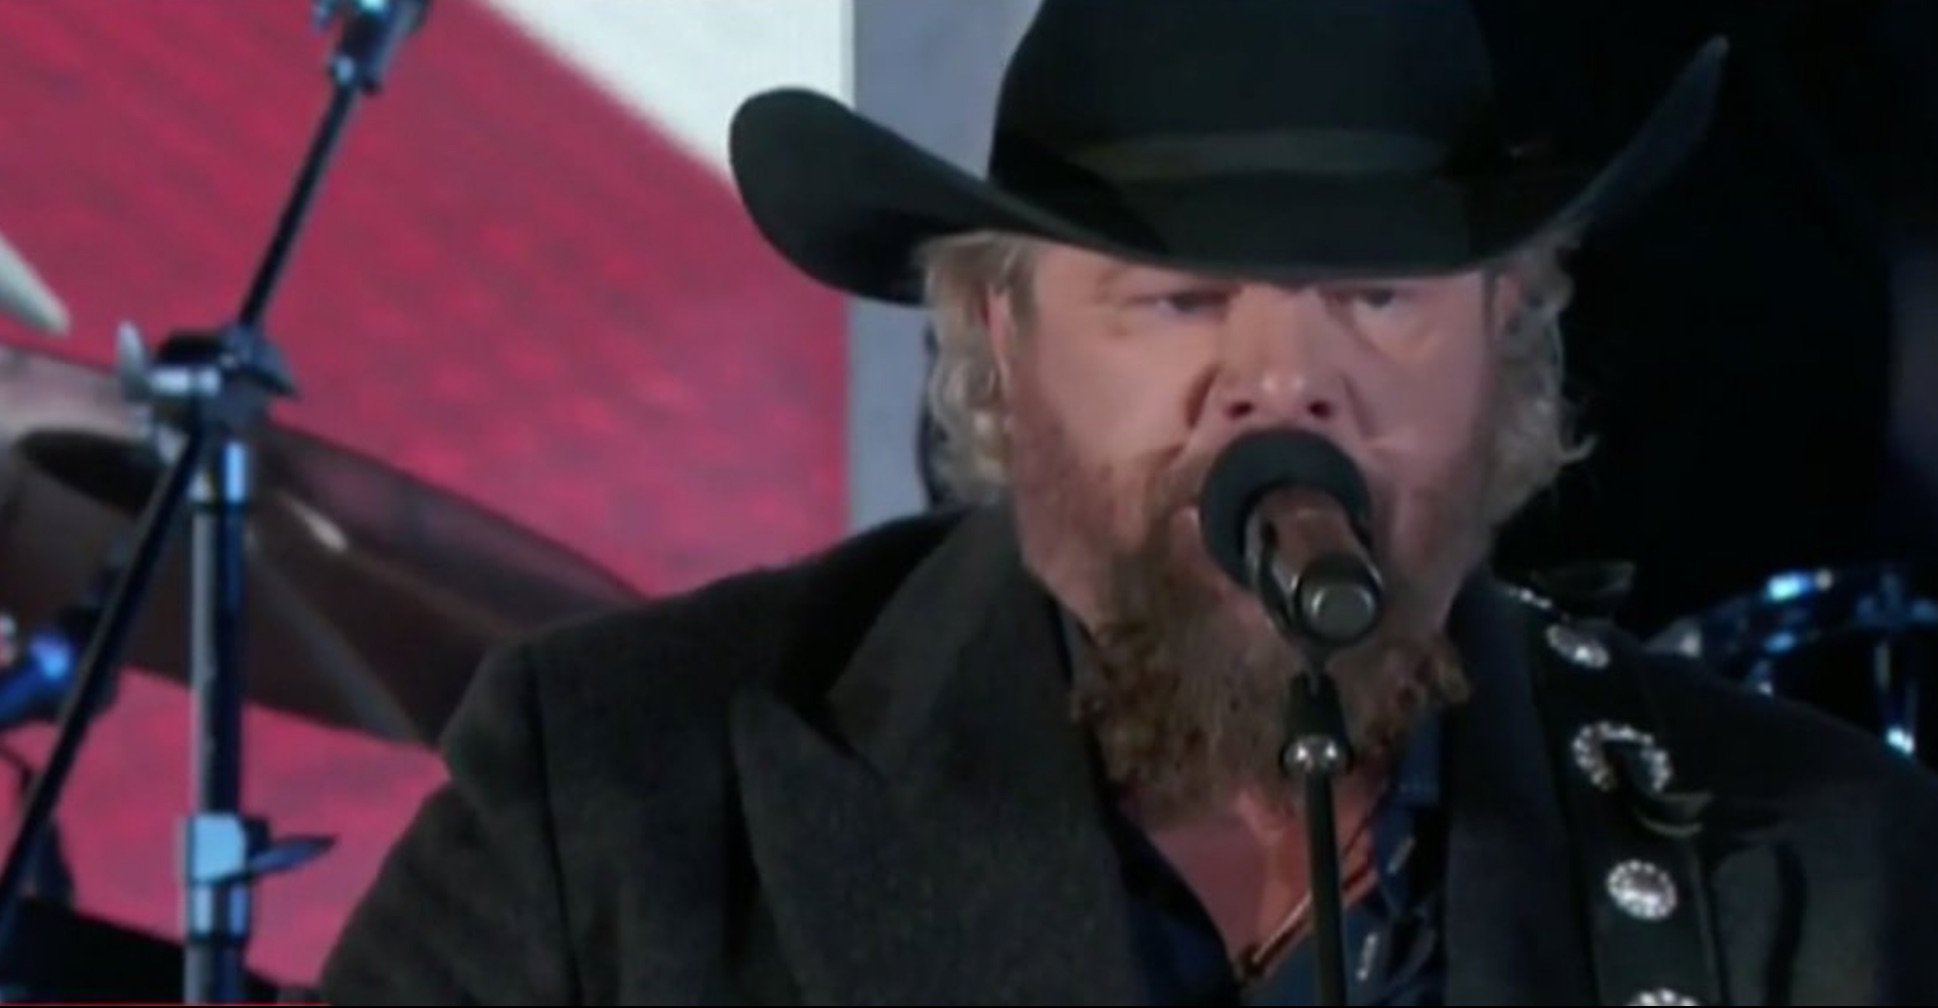 Toby Keith Sang 'American Soldier' at the #Inauguration and It Will Make You Cry [VIDEO]